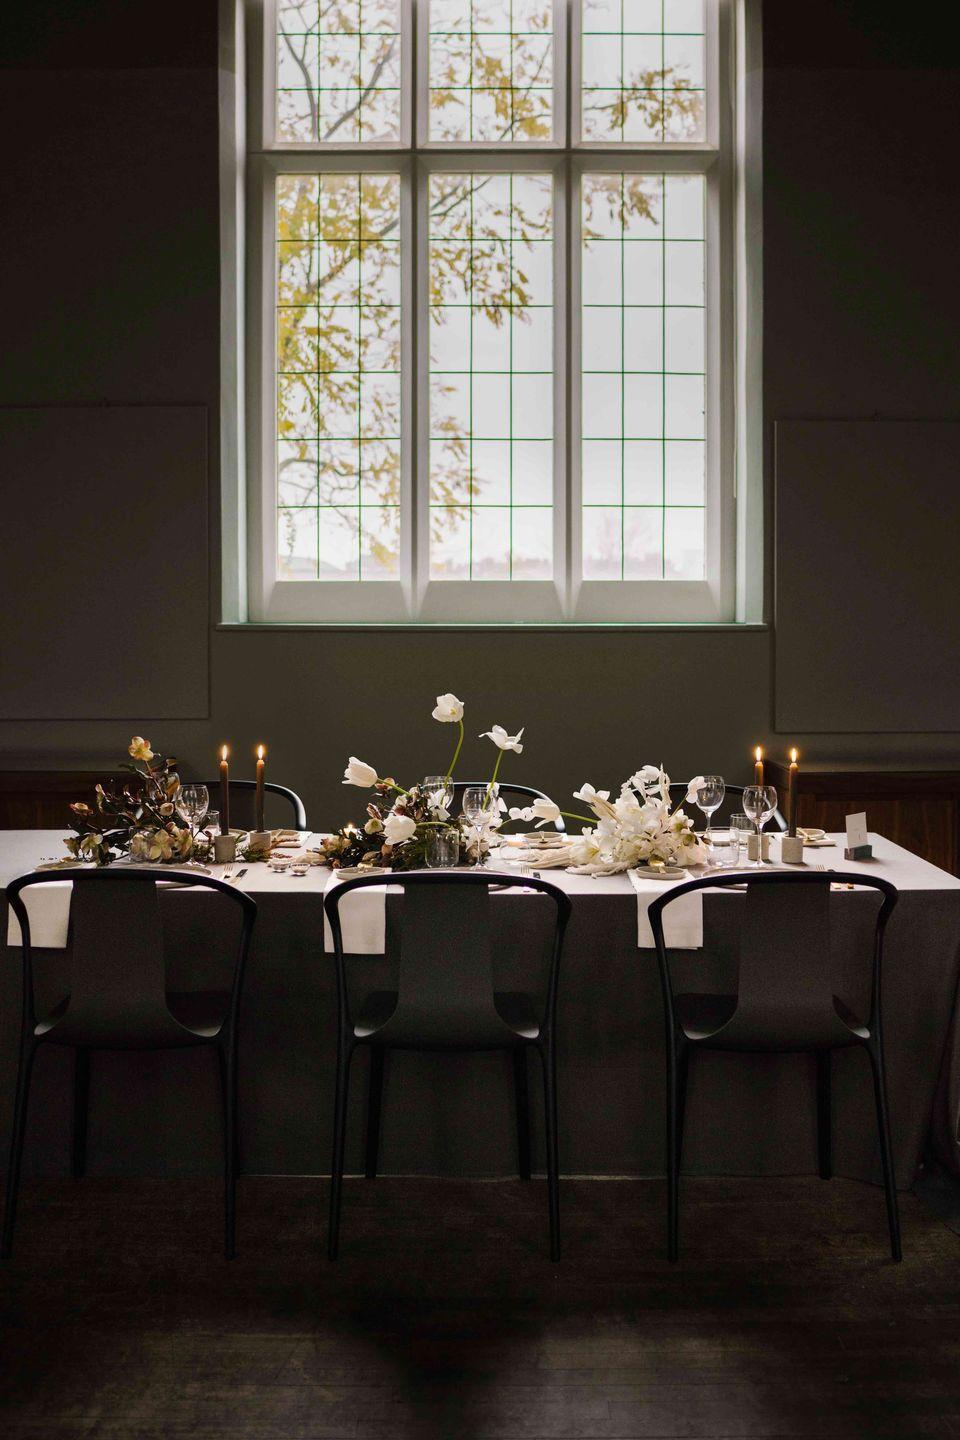 """<p>Add a shot of drama to proceedings with this contrasting black and white theme reminiscent of a Dutch master, here designed by bespoke planner and designer Anne Ladegast-Chiu of Hilde.<br><br>For similar napkins, try 'Lario Alabaster <strong>Napkins</strong>', £36 for four, Designers Guild (<u><a href=""""https://www.designersguild.com/uk/table-linen/designers-guild/lario-alabaster-table-linen/P168?gclid=Cj0KCQiAhs79BRD0ARIsAC6XpaXz1_fmMhVQEIRFb8m8pWGU-Am3y_WjwXGQXExl6ztS39cZ9Jpbkx0aAhf-EALw_wcB"""" rel=""""nofollow noopener"""" target=""""_blank"""" data-ylk=""""slk:designersguild.com"""" class=""""link rapid-noclick-resp"""">designersguild.com</a></u>). For black candles, try 'Black Dinner <strong>Candles'</strong>, £8 for six, Nordic House (<u><a href=""""https://www.nordichouse.co.uk/black-dinner-candles-p-1114.html?utm_source=nordichouse.co.uk&utm_medium=cppc&utm_campaign=campaign1&gclid=Cj0KCQiAhs79BRD0ARIsAC6XpaX4BhXPe_QeIgWY5cb2uJmfVUreK_Lp0ynK4xYFdh-BdI-RCzkTFuQaAm6dEALw_wcB"""" rel=""""nofollow noopener"""" target=""""_blank"""" data-ylk=""""slk:nordichouse.co.uk"""" class=""""link rapid-noclick-resp"""">nordichouse.co.uk</a></u>). For similar candleholders, try 'Concrete Duo' <strong>candleholders</strong>, £10 each, Decorum (<u><a href=""""https://decorum-shop.co.uk/products/concrete-duo-candle-holder?variant=22991122565¤cy=GBP&utm_medium=product_sync&utm_source=google&utm_content=sag_organic&utm_campaign=sag_organic&gclid=Cj0KCQiAhs79BRD0ARIsAC6XpaXLUlaNAD1XyuLktKCmV9QKfHle_57Svcm9JF-c4POCzqZ_T9KbAFAaAlnTEALw_wcB"""" rel=""""nofollow noopener"""" target=""""_blank"""" data-ylk=""""slk:decorum-shop.co.uk)"""" class=""""link rapid-noclick-resp"""">decorum-shop.co.uk)</a></u>. For similar cutlery, try 'Old <strong>Cutlery</strong>', from £22 for a set of six, RE (<u><a href=""""https://www.re-foundobjects.com/product/view/old-cutlery?cat=33"""" rel=""""nofollow noopener"""" target=""""_blank"""" data-ylk=""""slk:re-foundobjects.com"""" class=""""link rapid-noclick-resp"""">re-foundobjects.com</a></u>). For similar side plates, try 'Hasami Porcelain Gloss Grey <strong>Pla"""